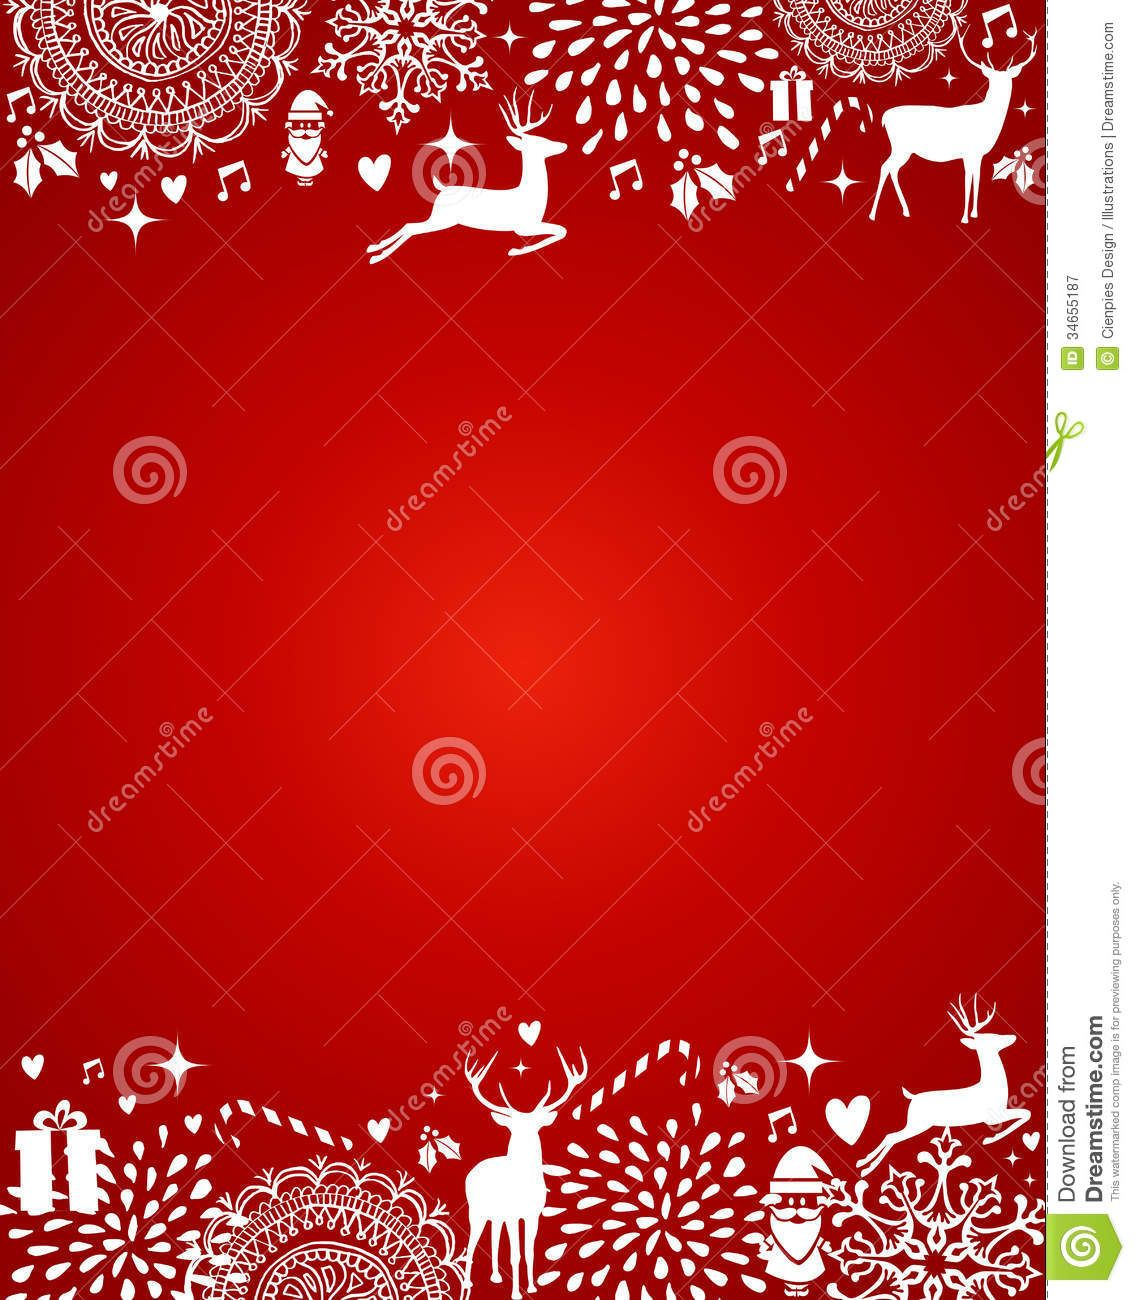 Christmas Templates Free  Christmas Card Templates For Word